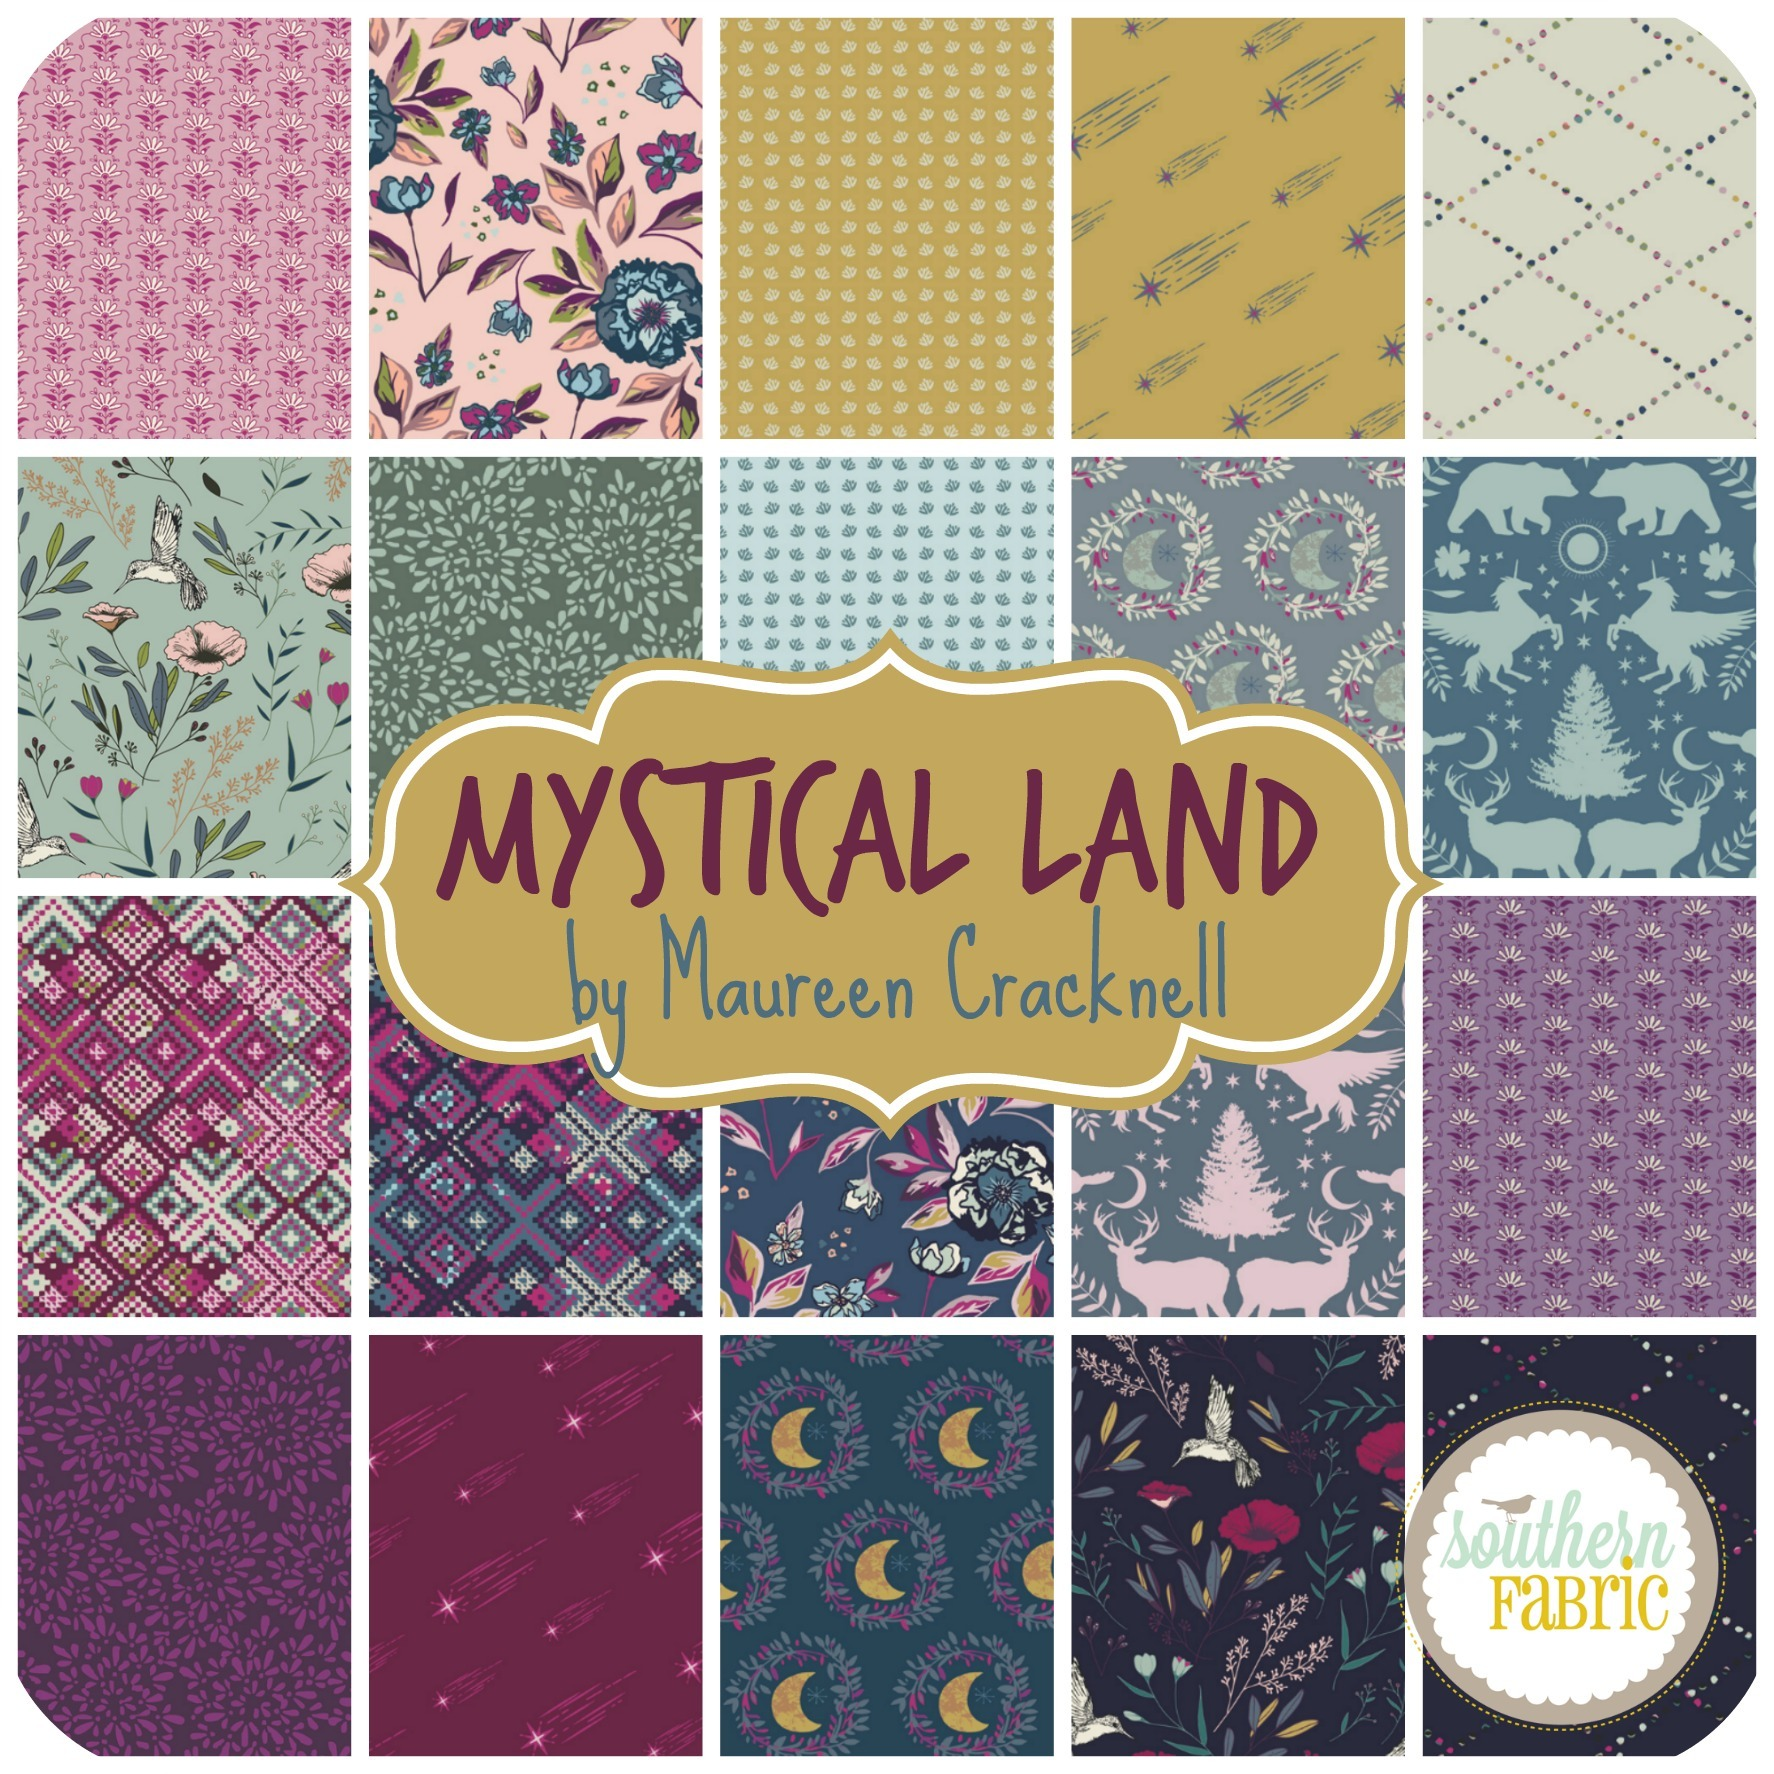 Mystical Land by Maureen Cracknell